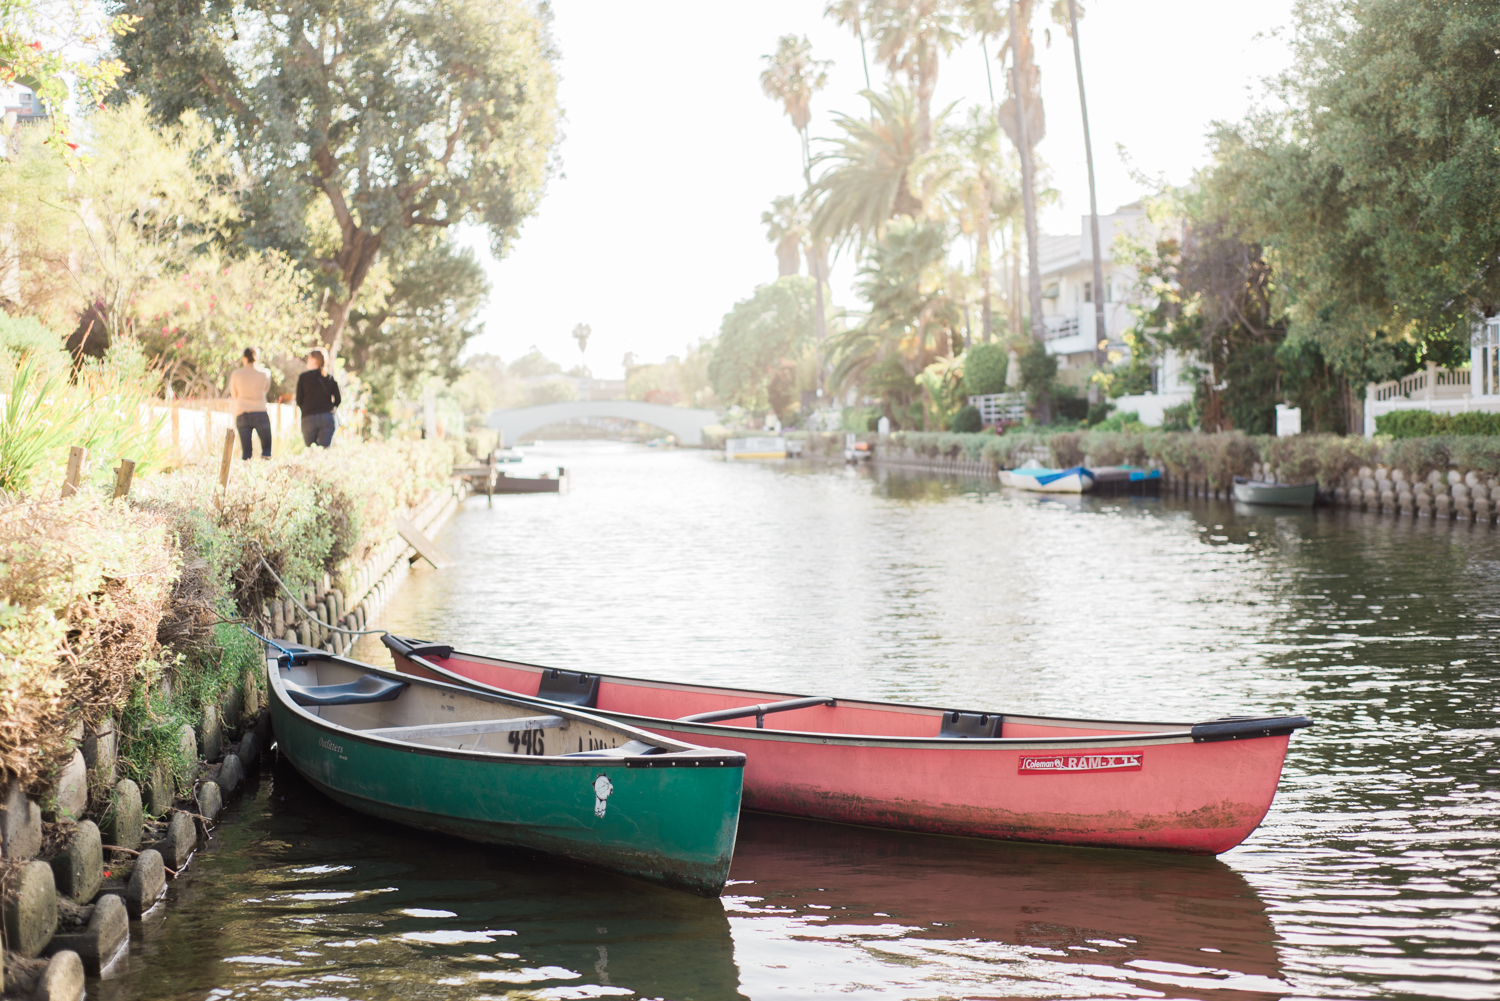 lauren&anthony-venice-canals-engagement-session-photography-los-angeles-wedding-photographer-venice-8.jpg